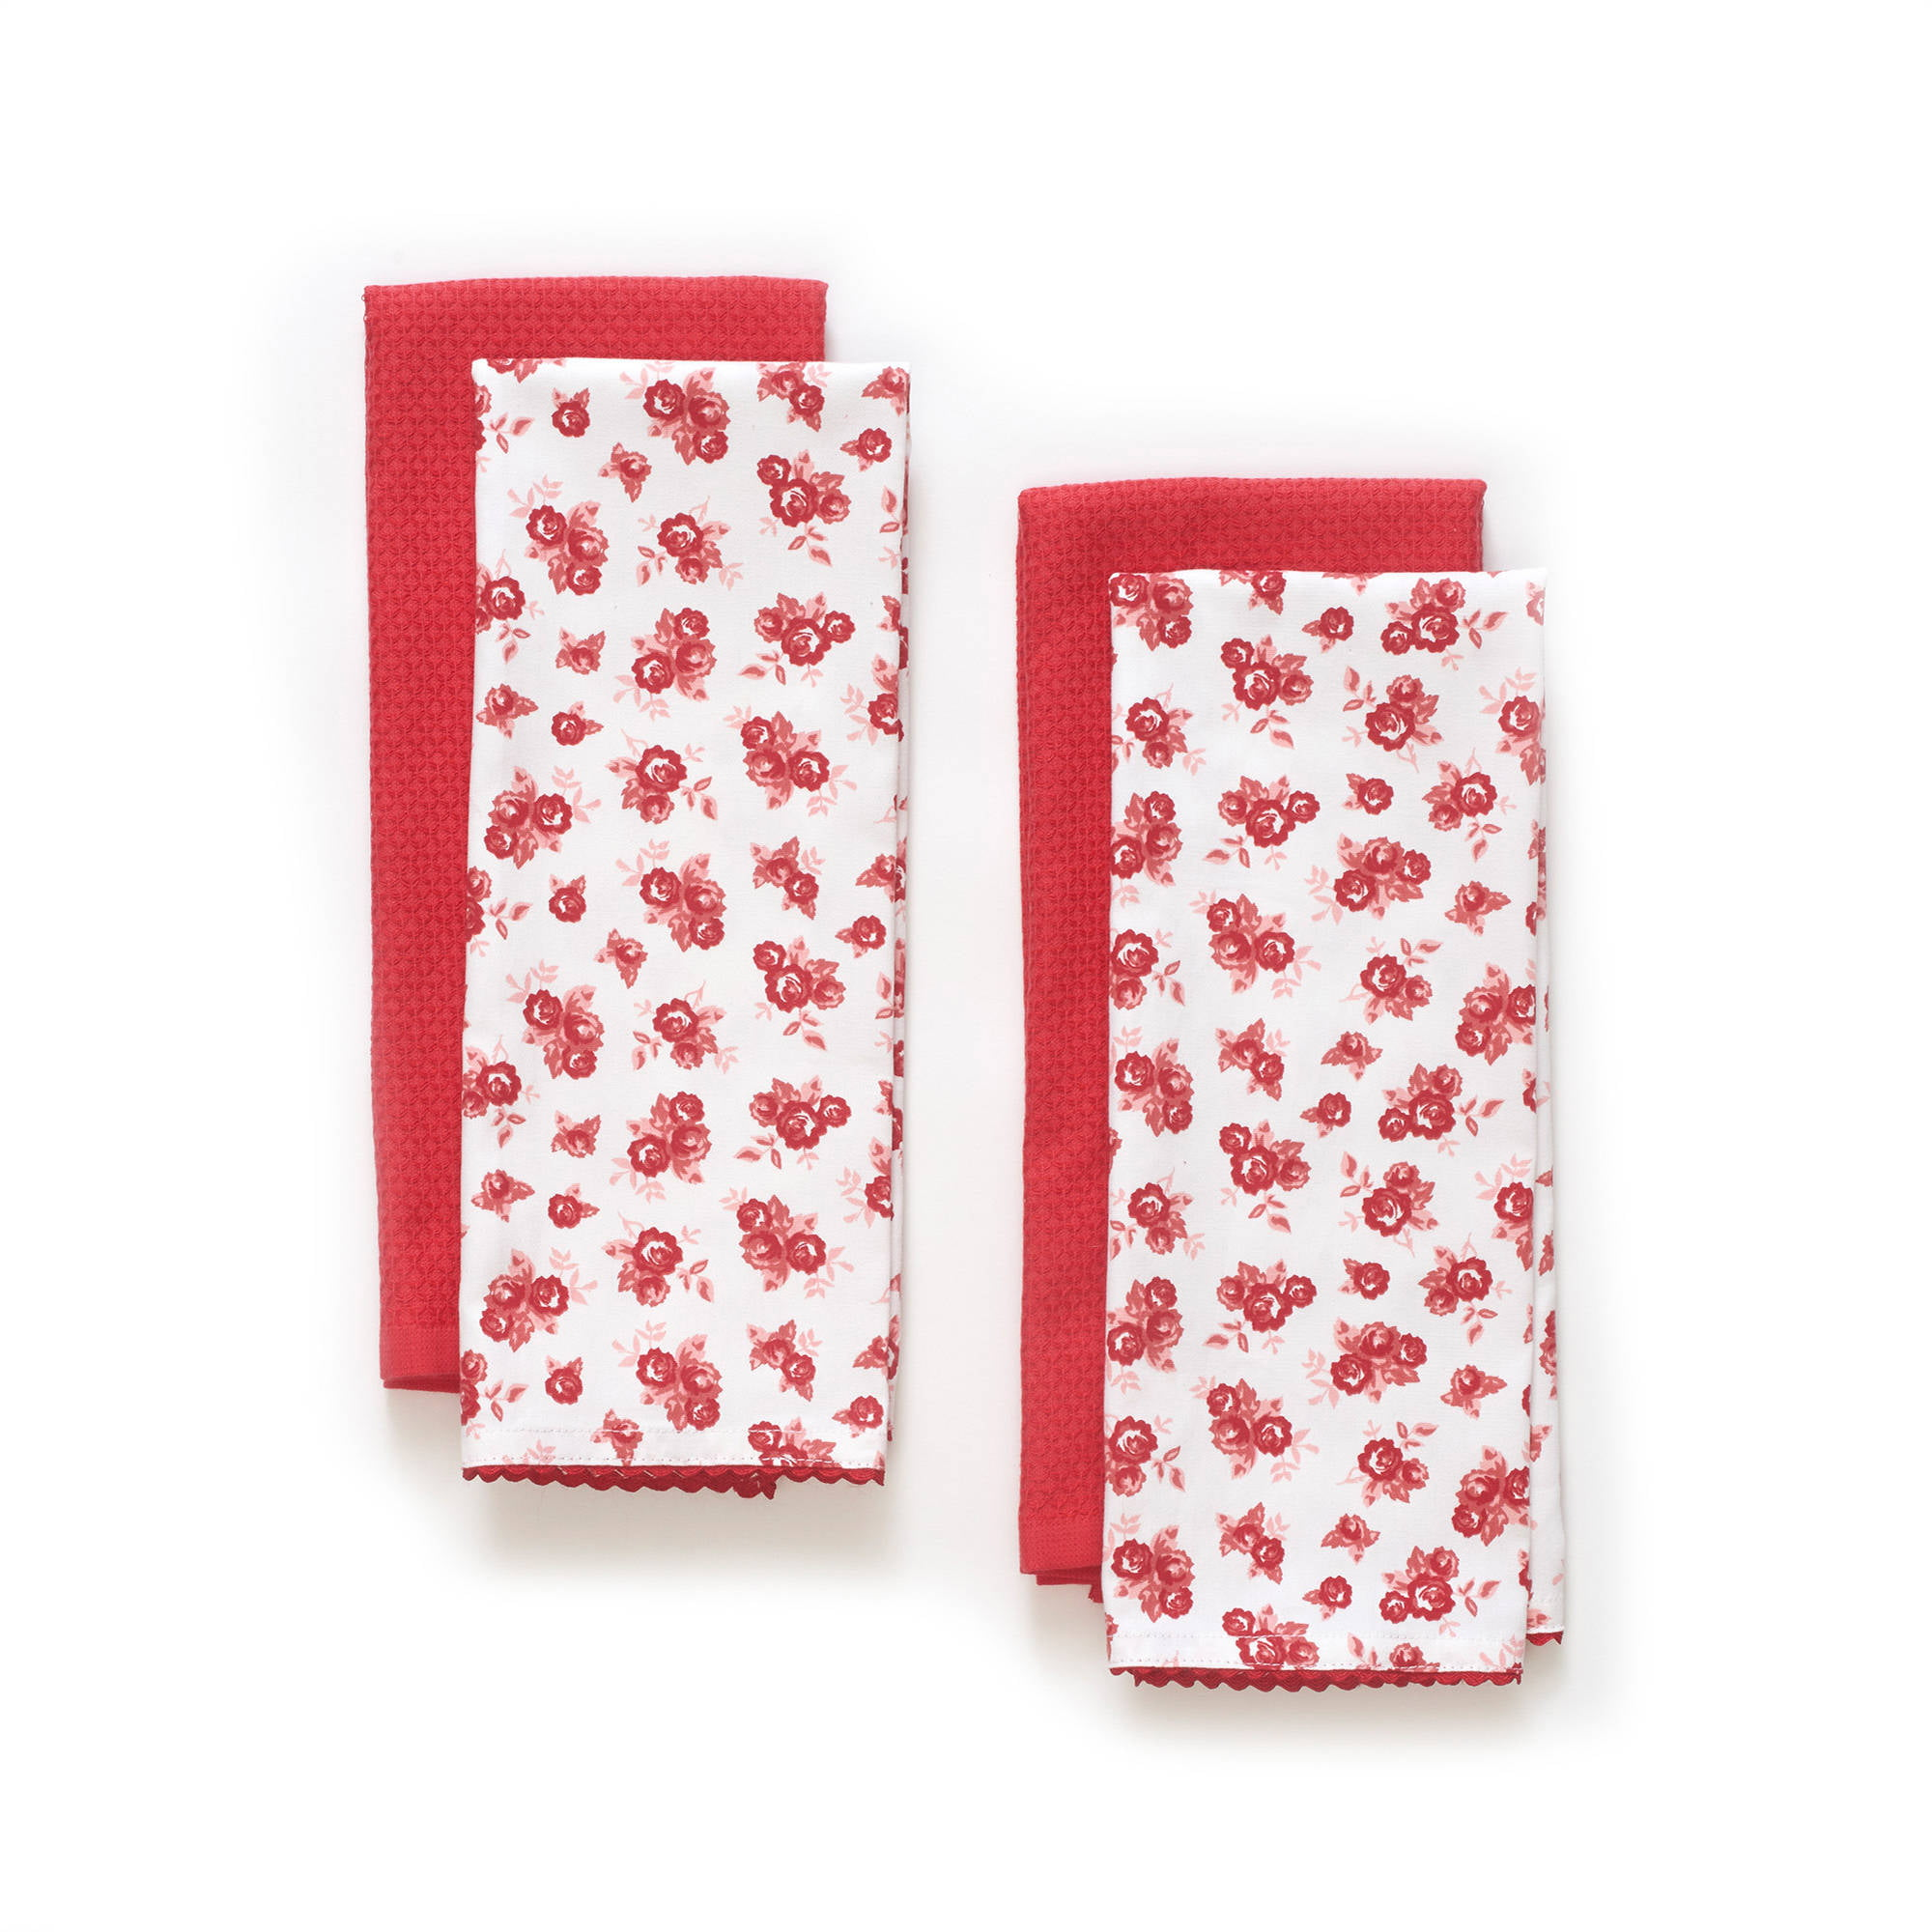 The Pioneer Woman Wild Rose Kitchen Towel Set, 4pk by TOWN AND COUNTRY LIVING